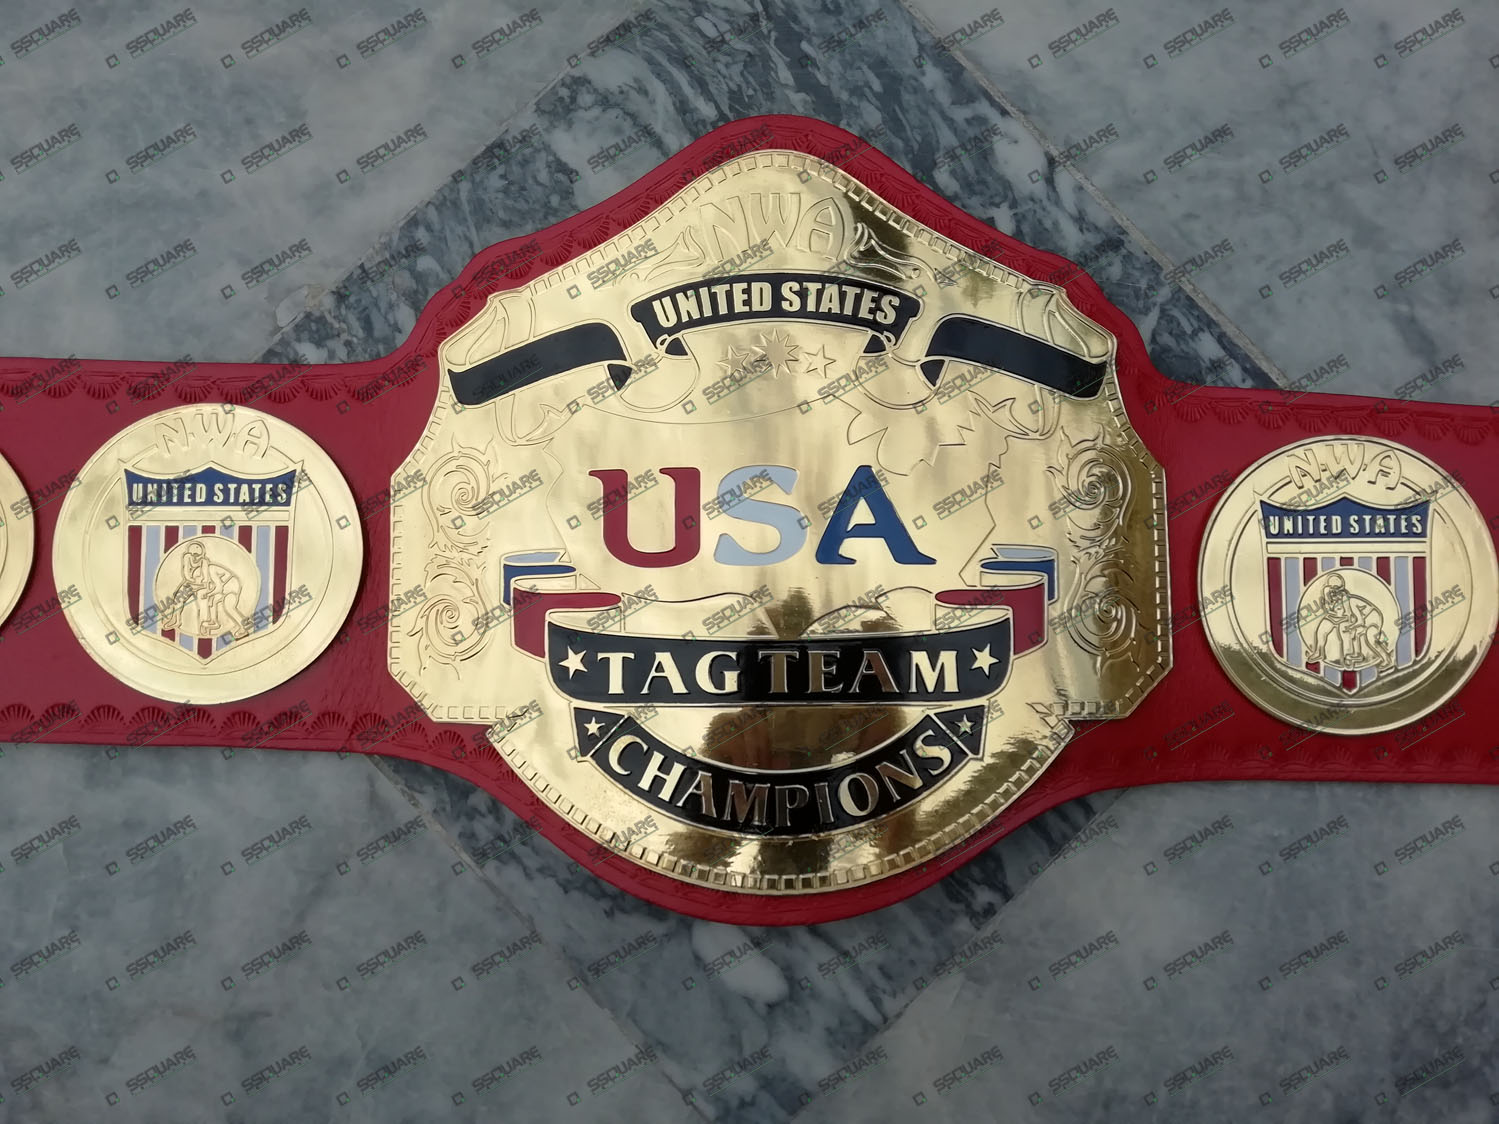 NWA United States USA Tag team Champion replica belt